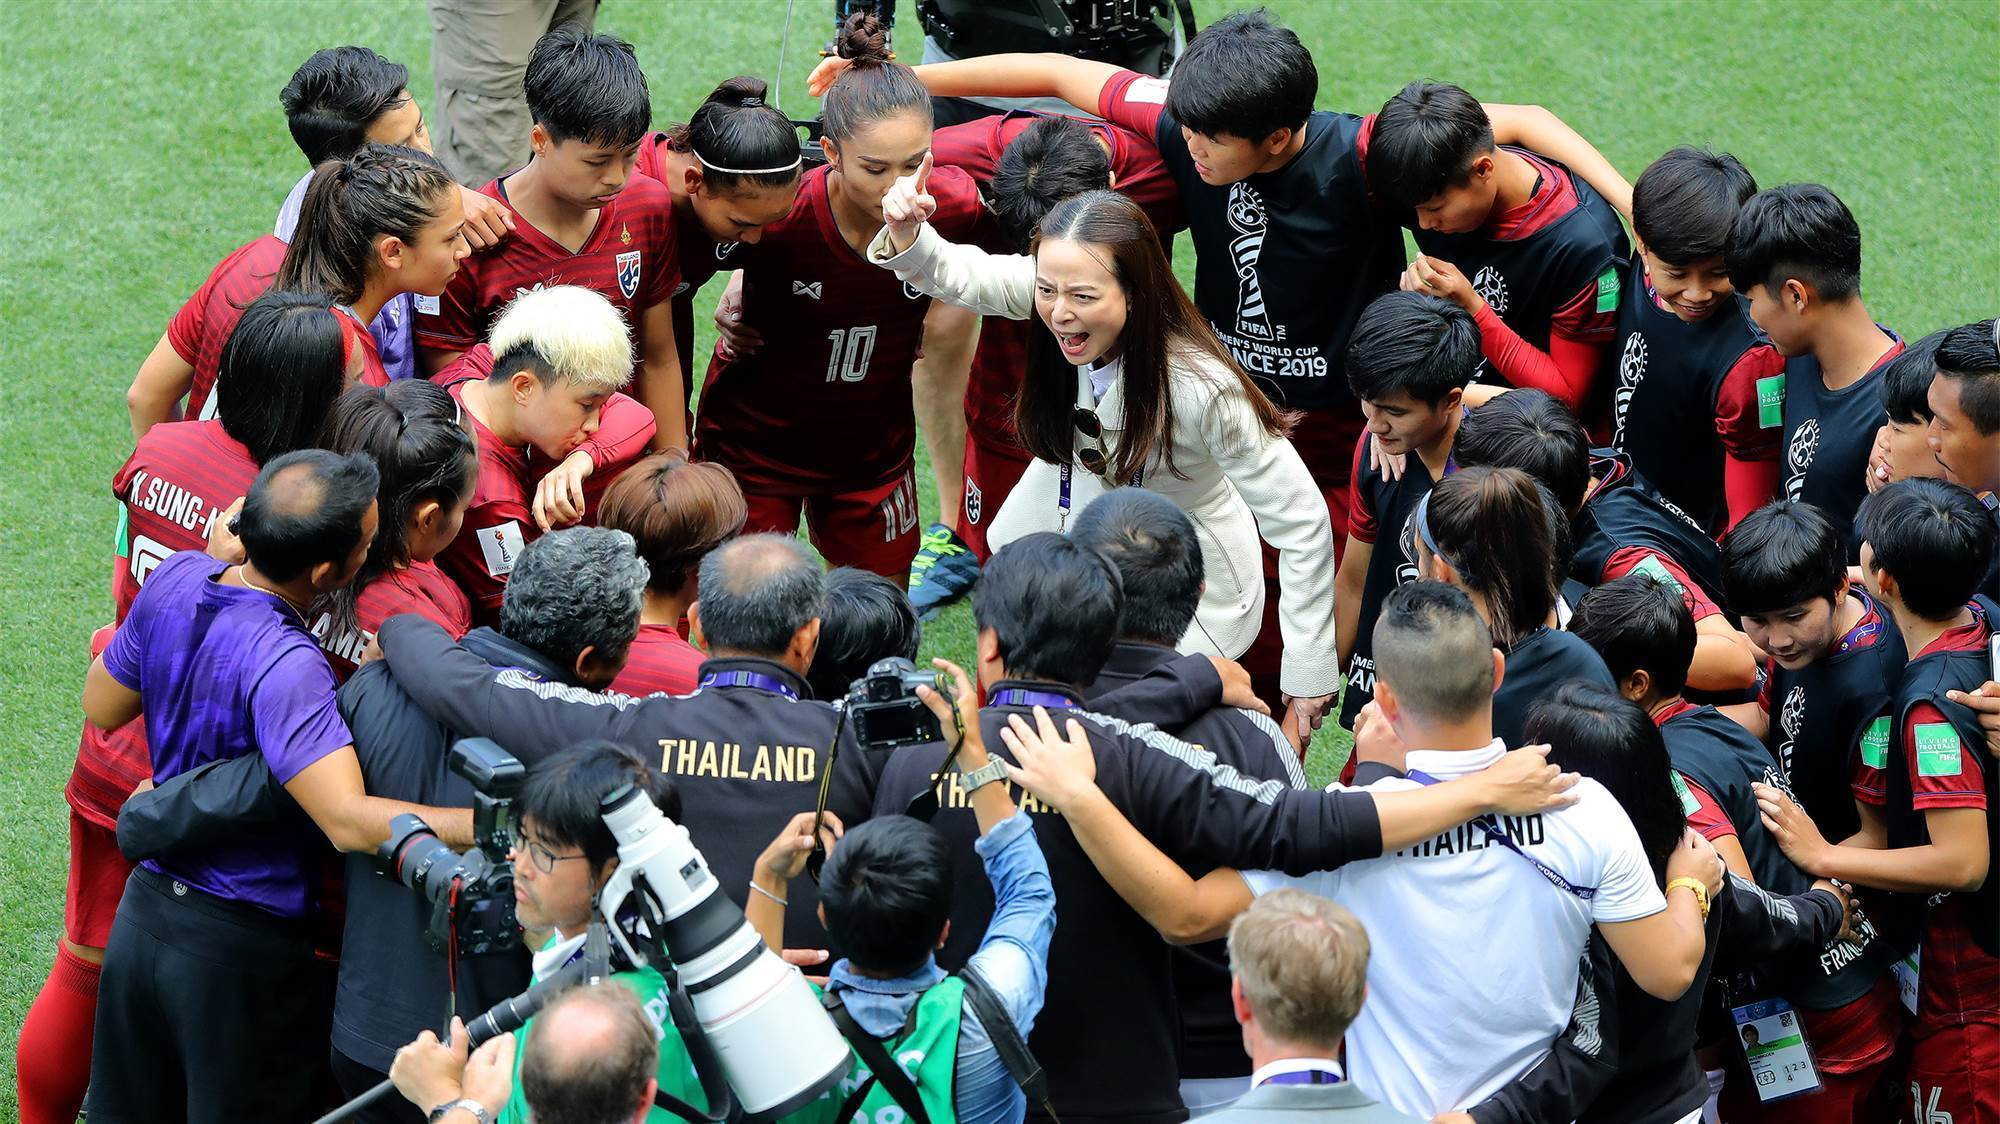 Thailand's goal: Why it meant so much